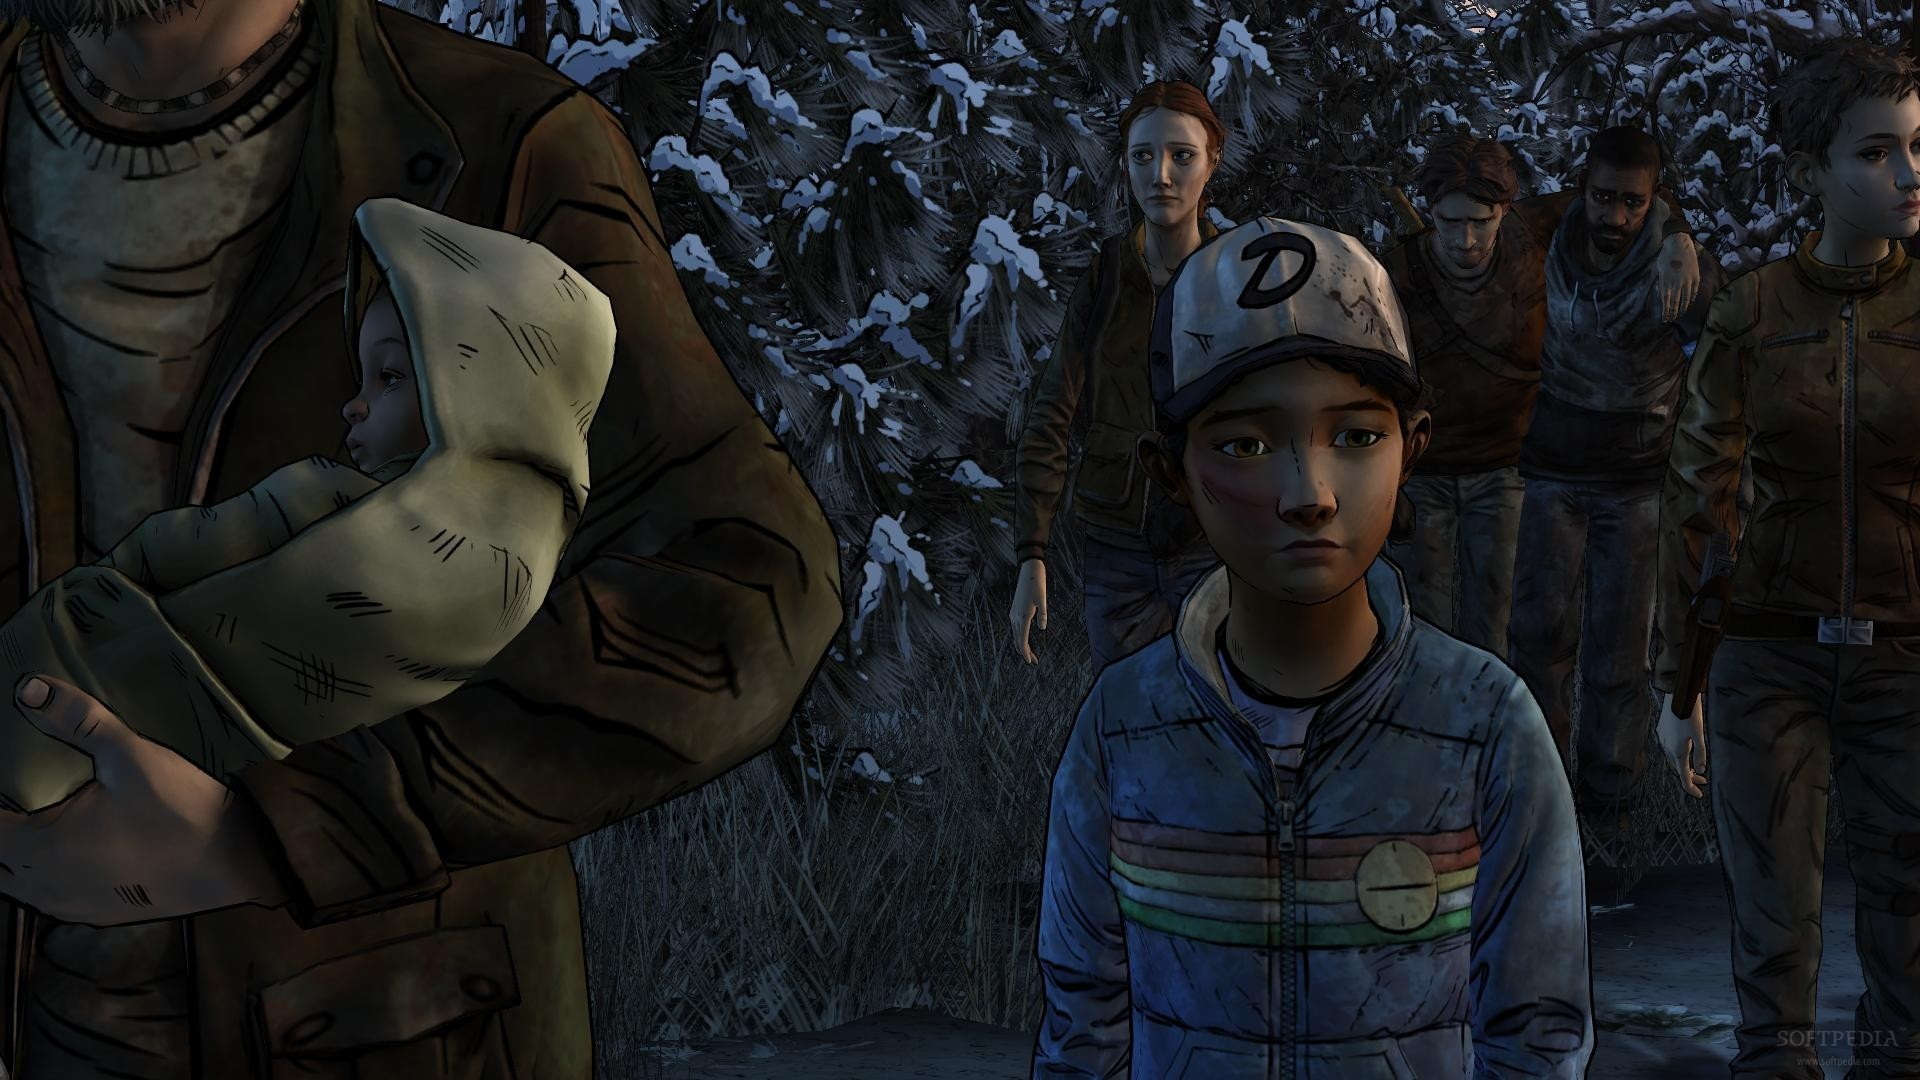 The Walking Dead Season 2 Episode 5: No Going Back Review